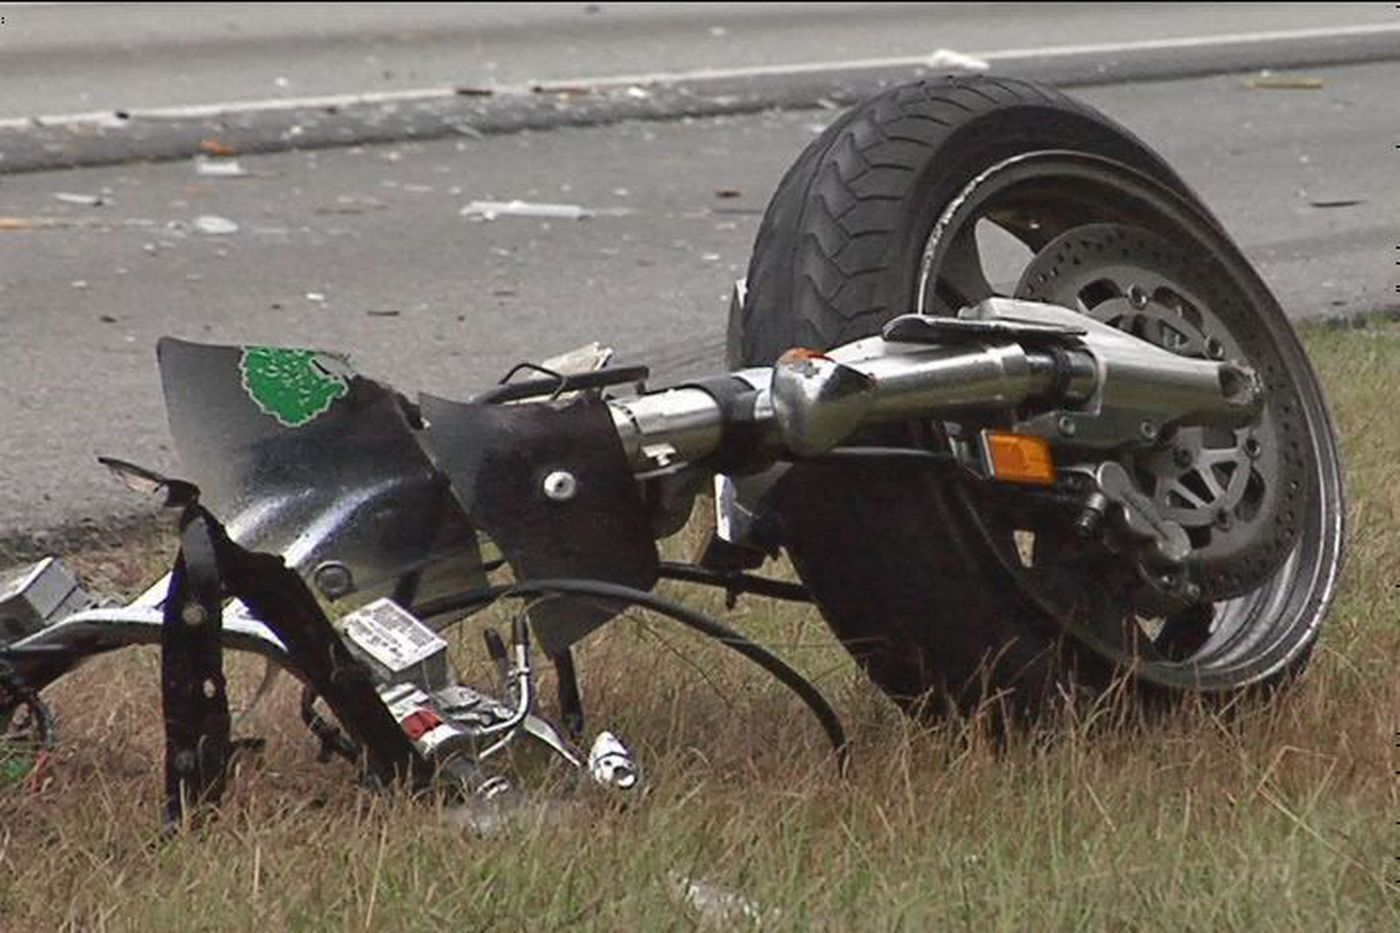 Deadly Motorcycle Accident on I-95